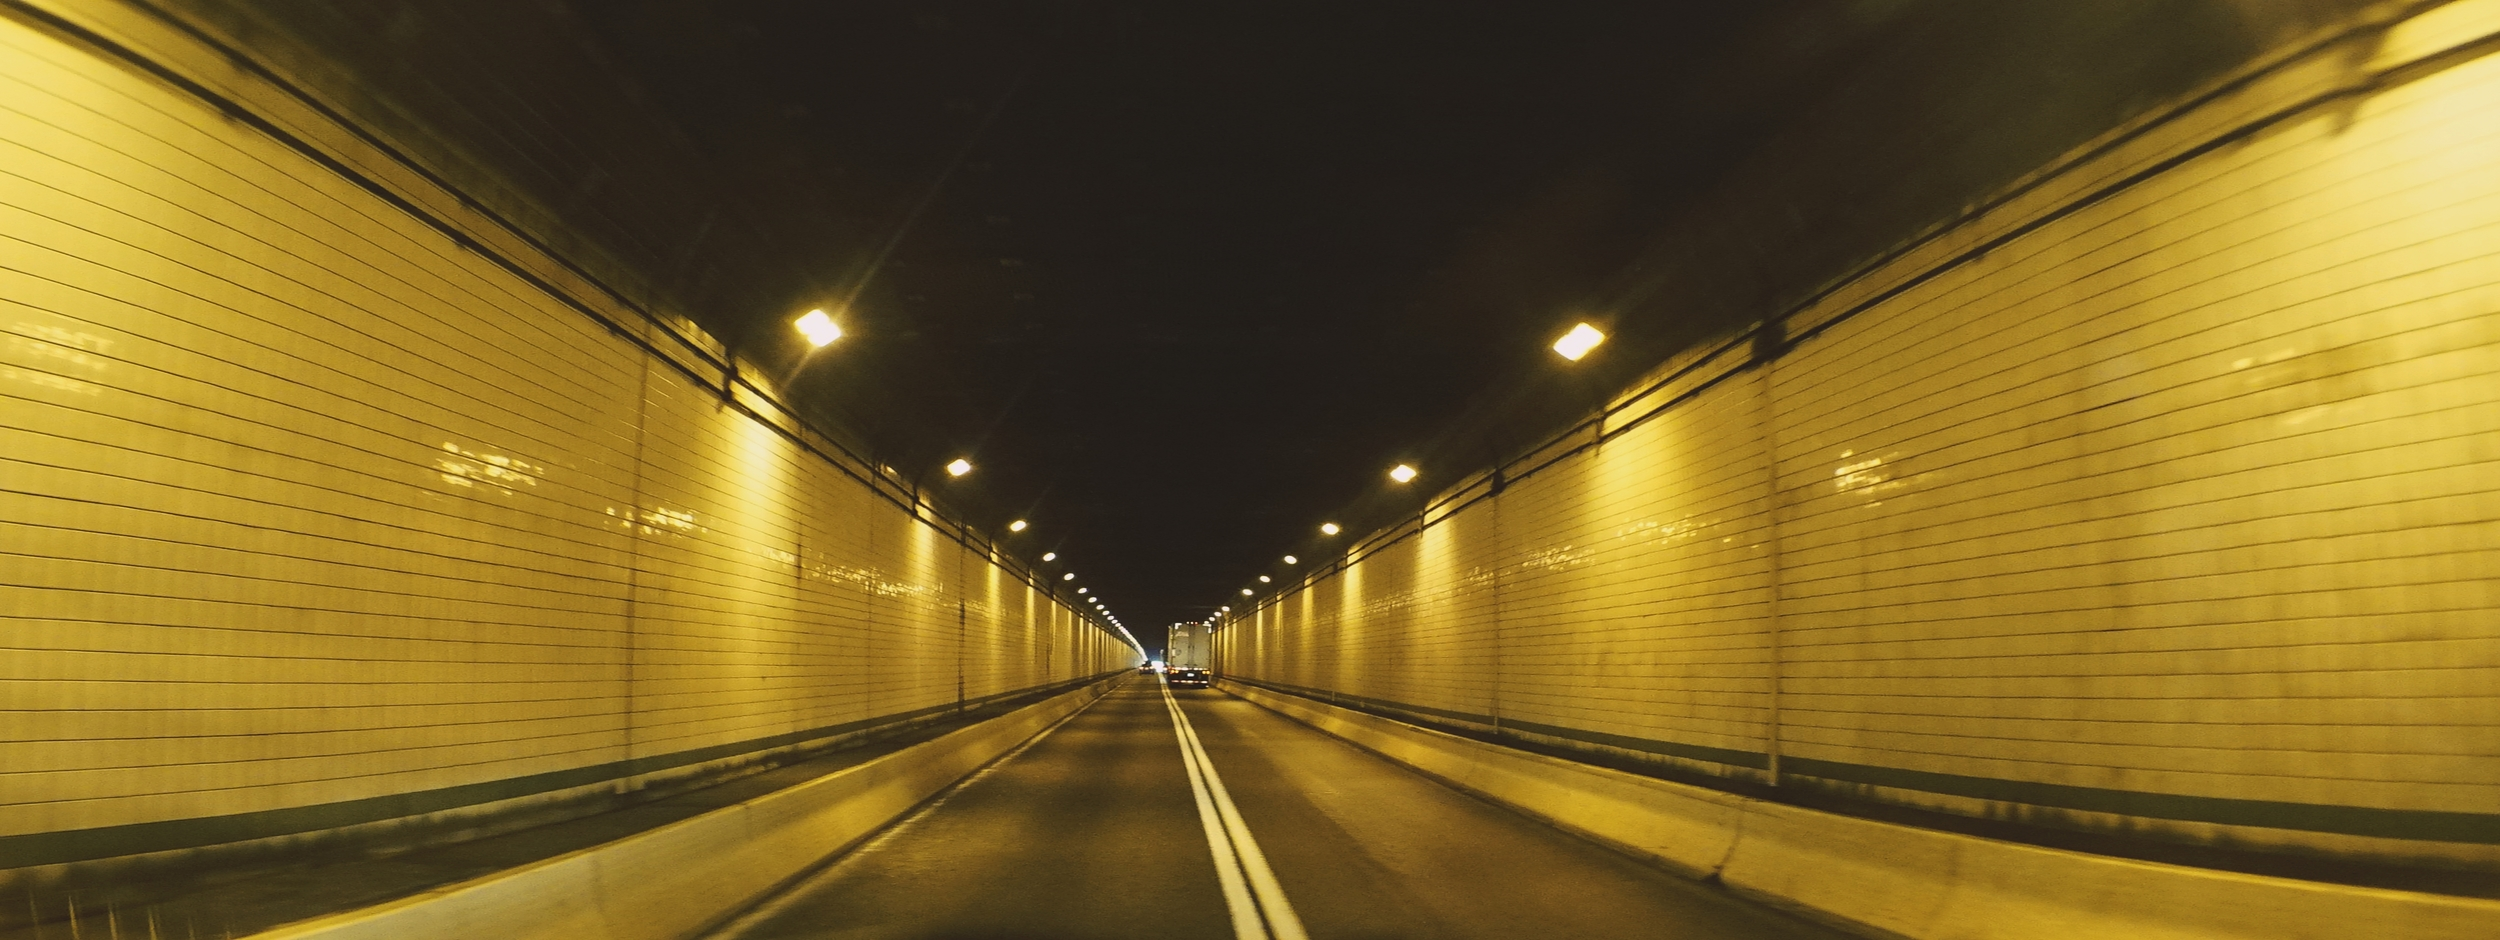 Elite 24.5mm anamorphic | Allegheny Mountain Tunnel - Taken out the front widow of my grip truck. Photo by Olivia Otten.